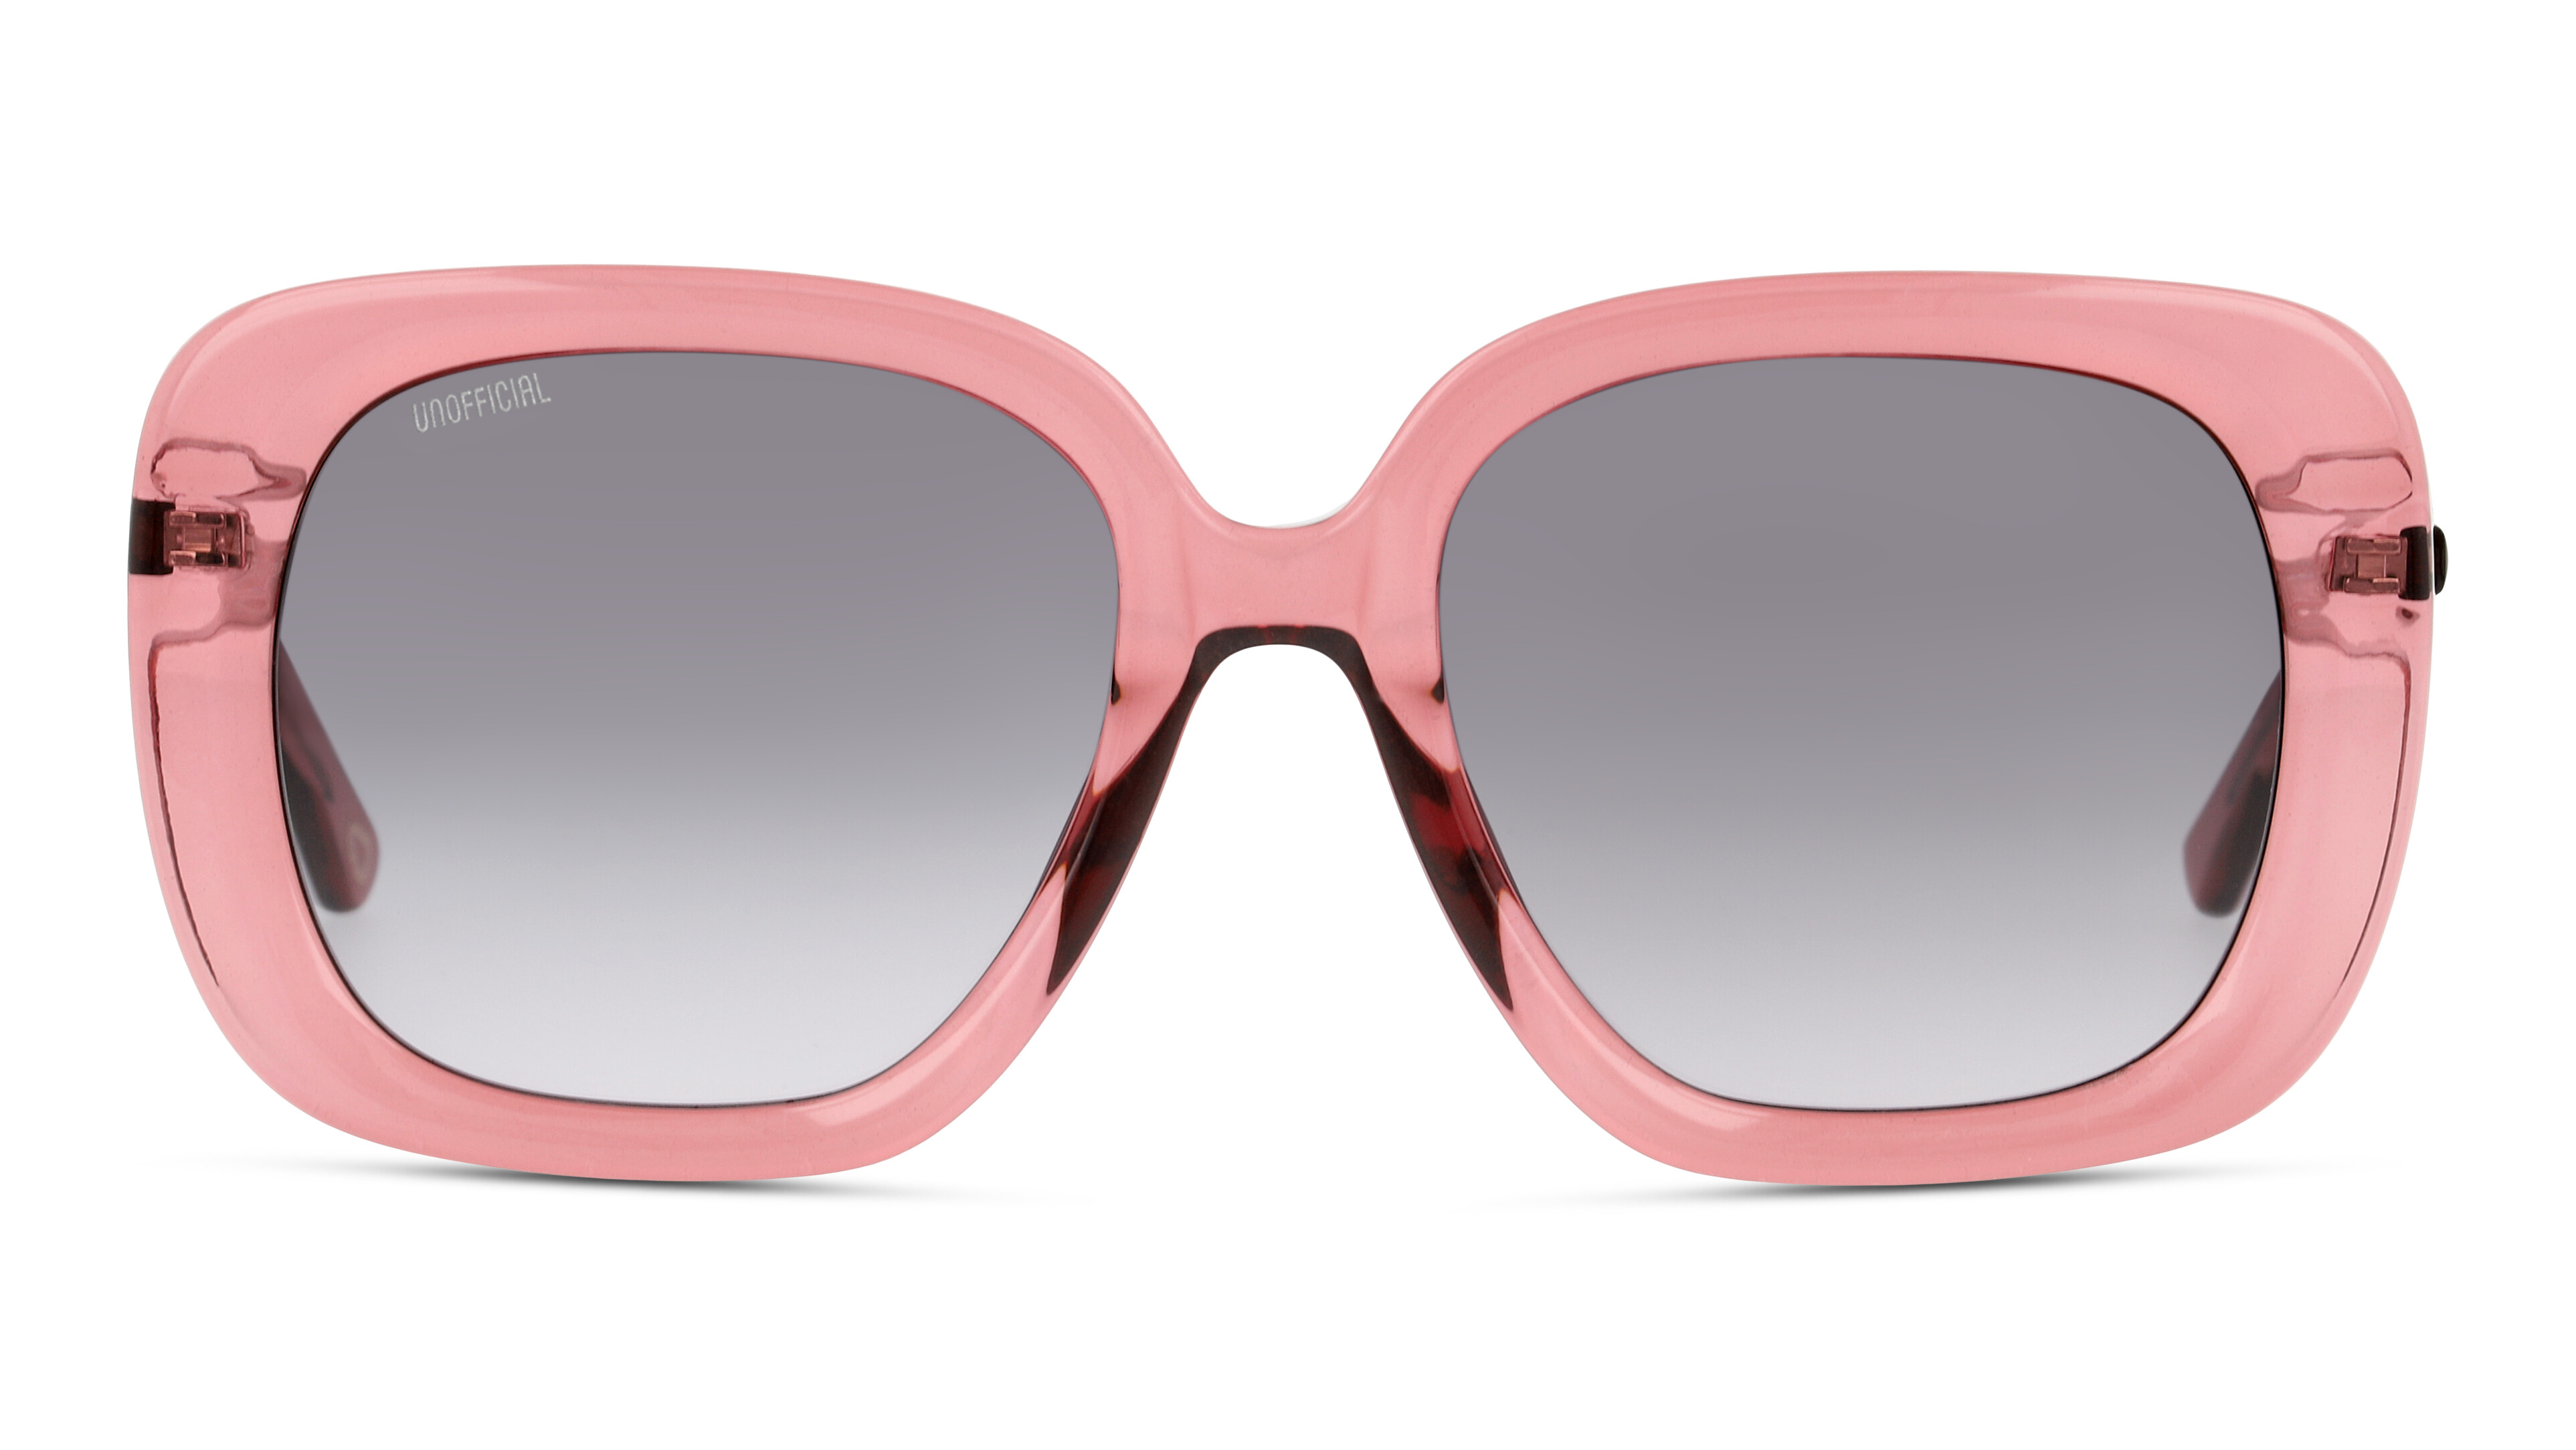 8719154812040-front-sonnenbrille-unofficial-unsf0132-pink-pink